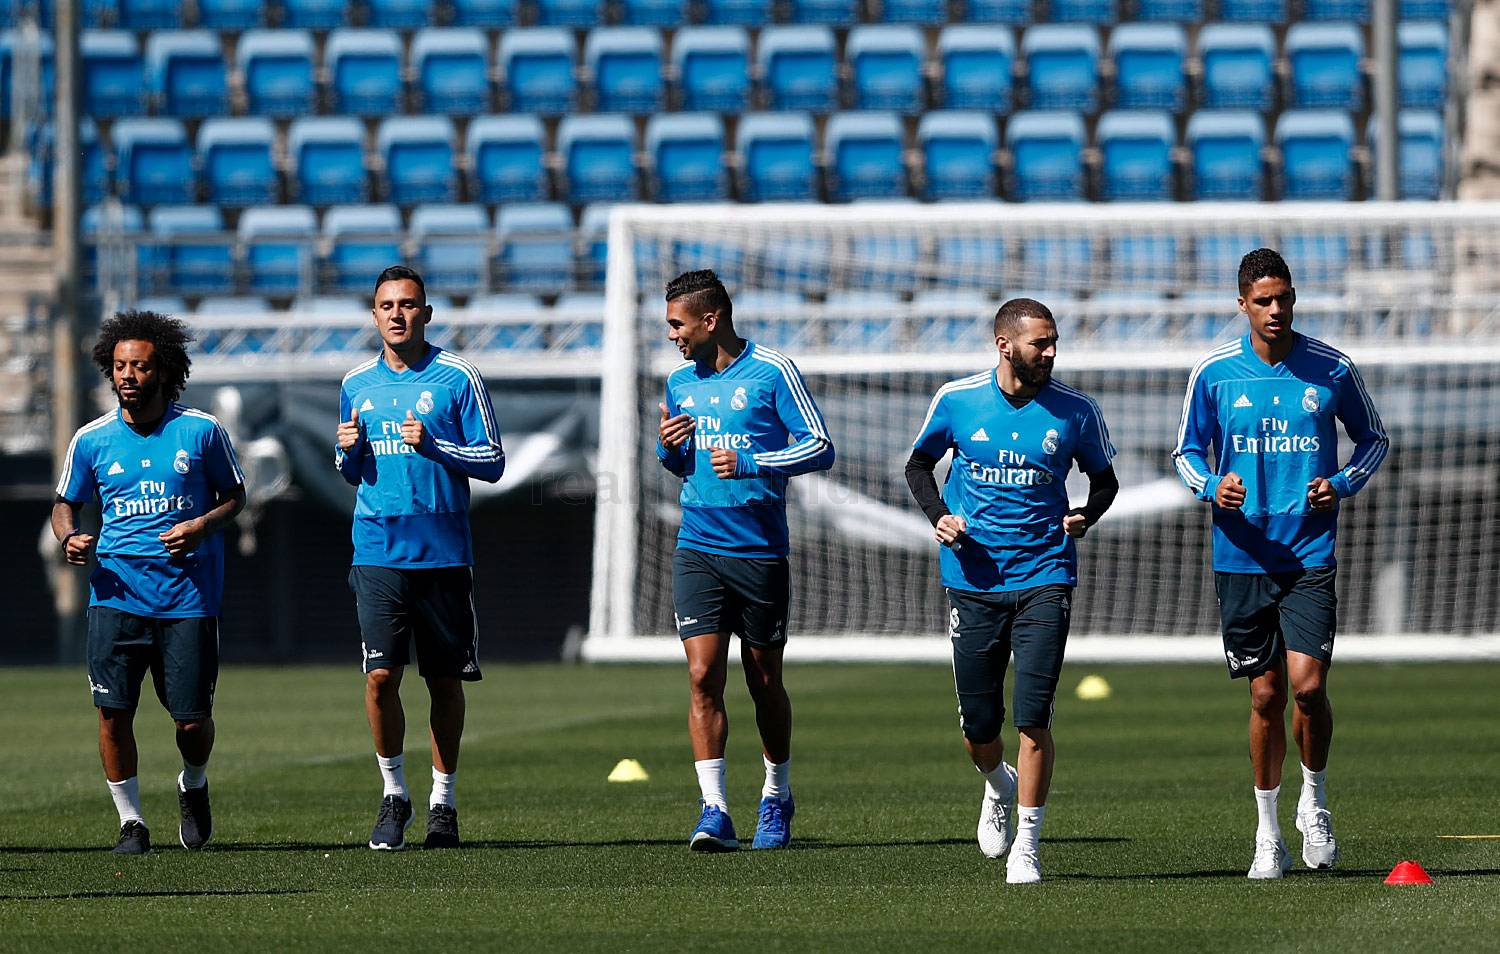 Real Madrid - Entrenamiento del Real Madrid - 04-04-2019